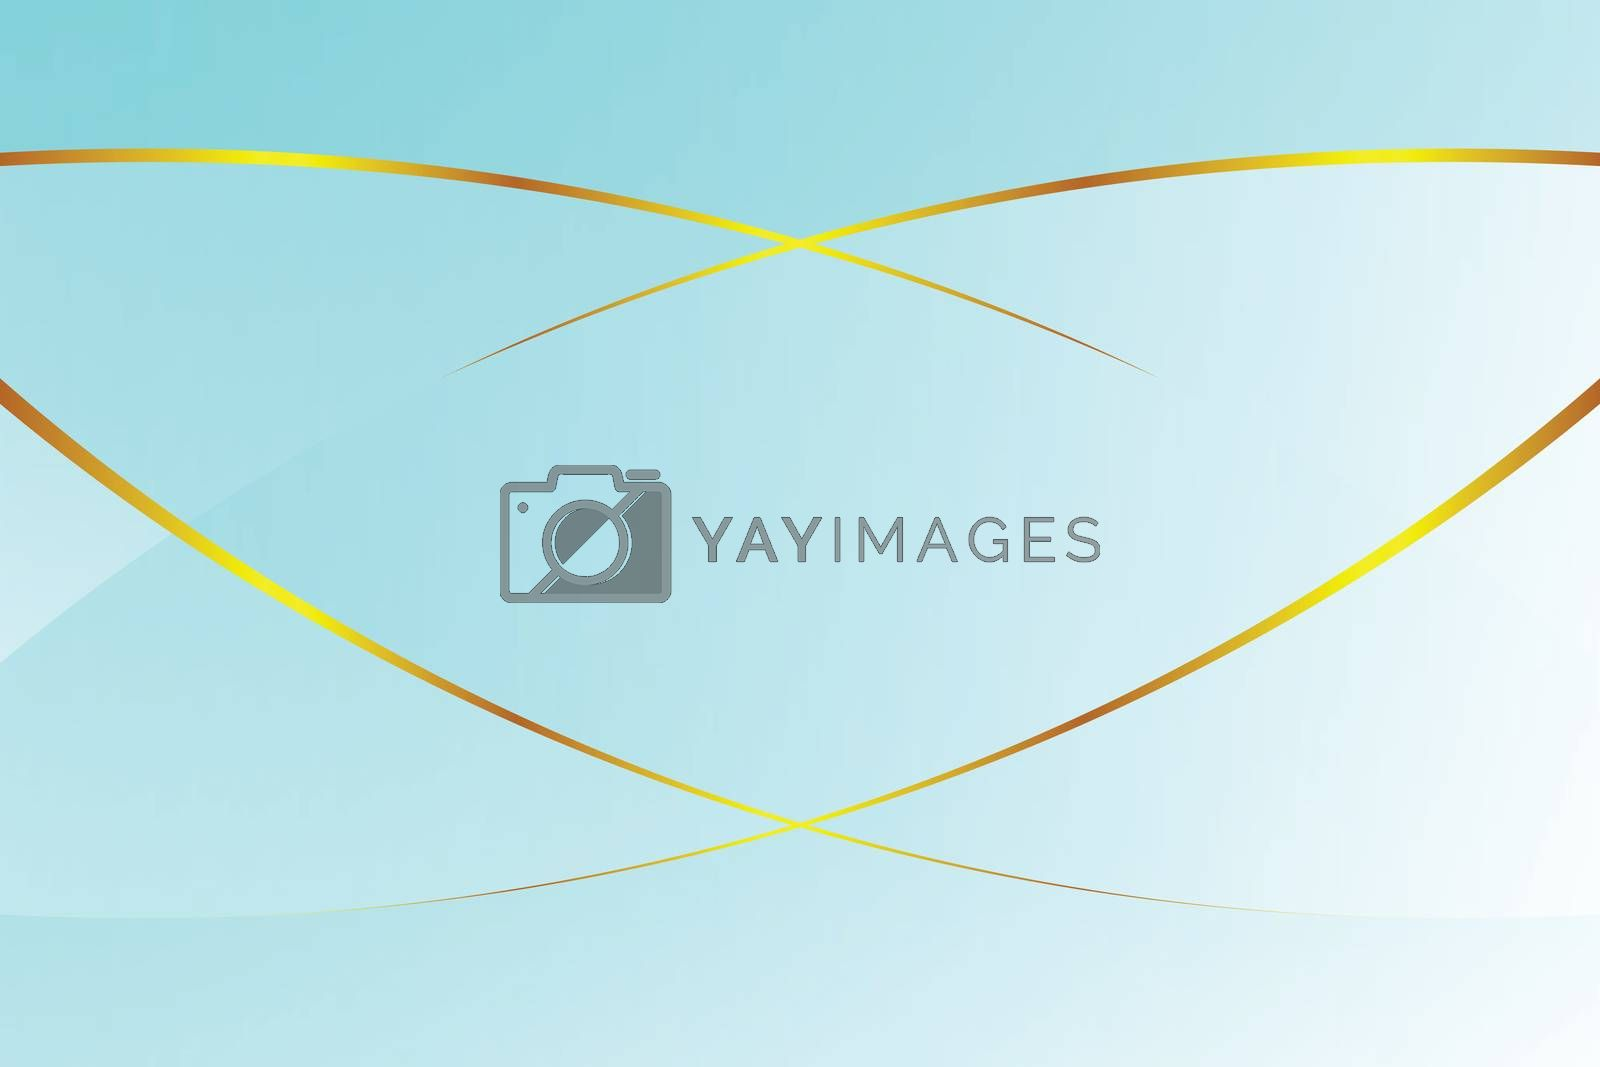 Royalty free image of blue light gradient color soft light and golden line graphic for cosmetics banner advertising luxury modern background (illustration) by cgdeaw